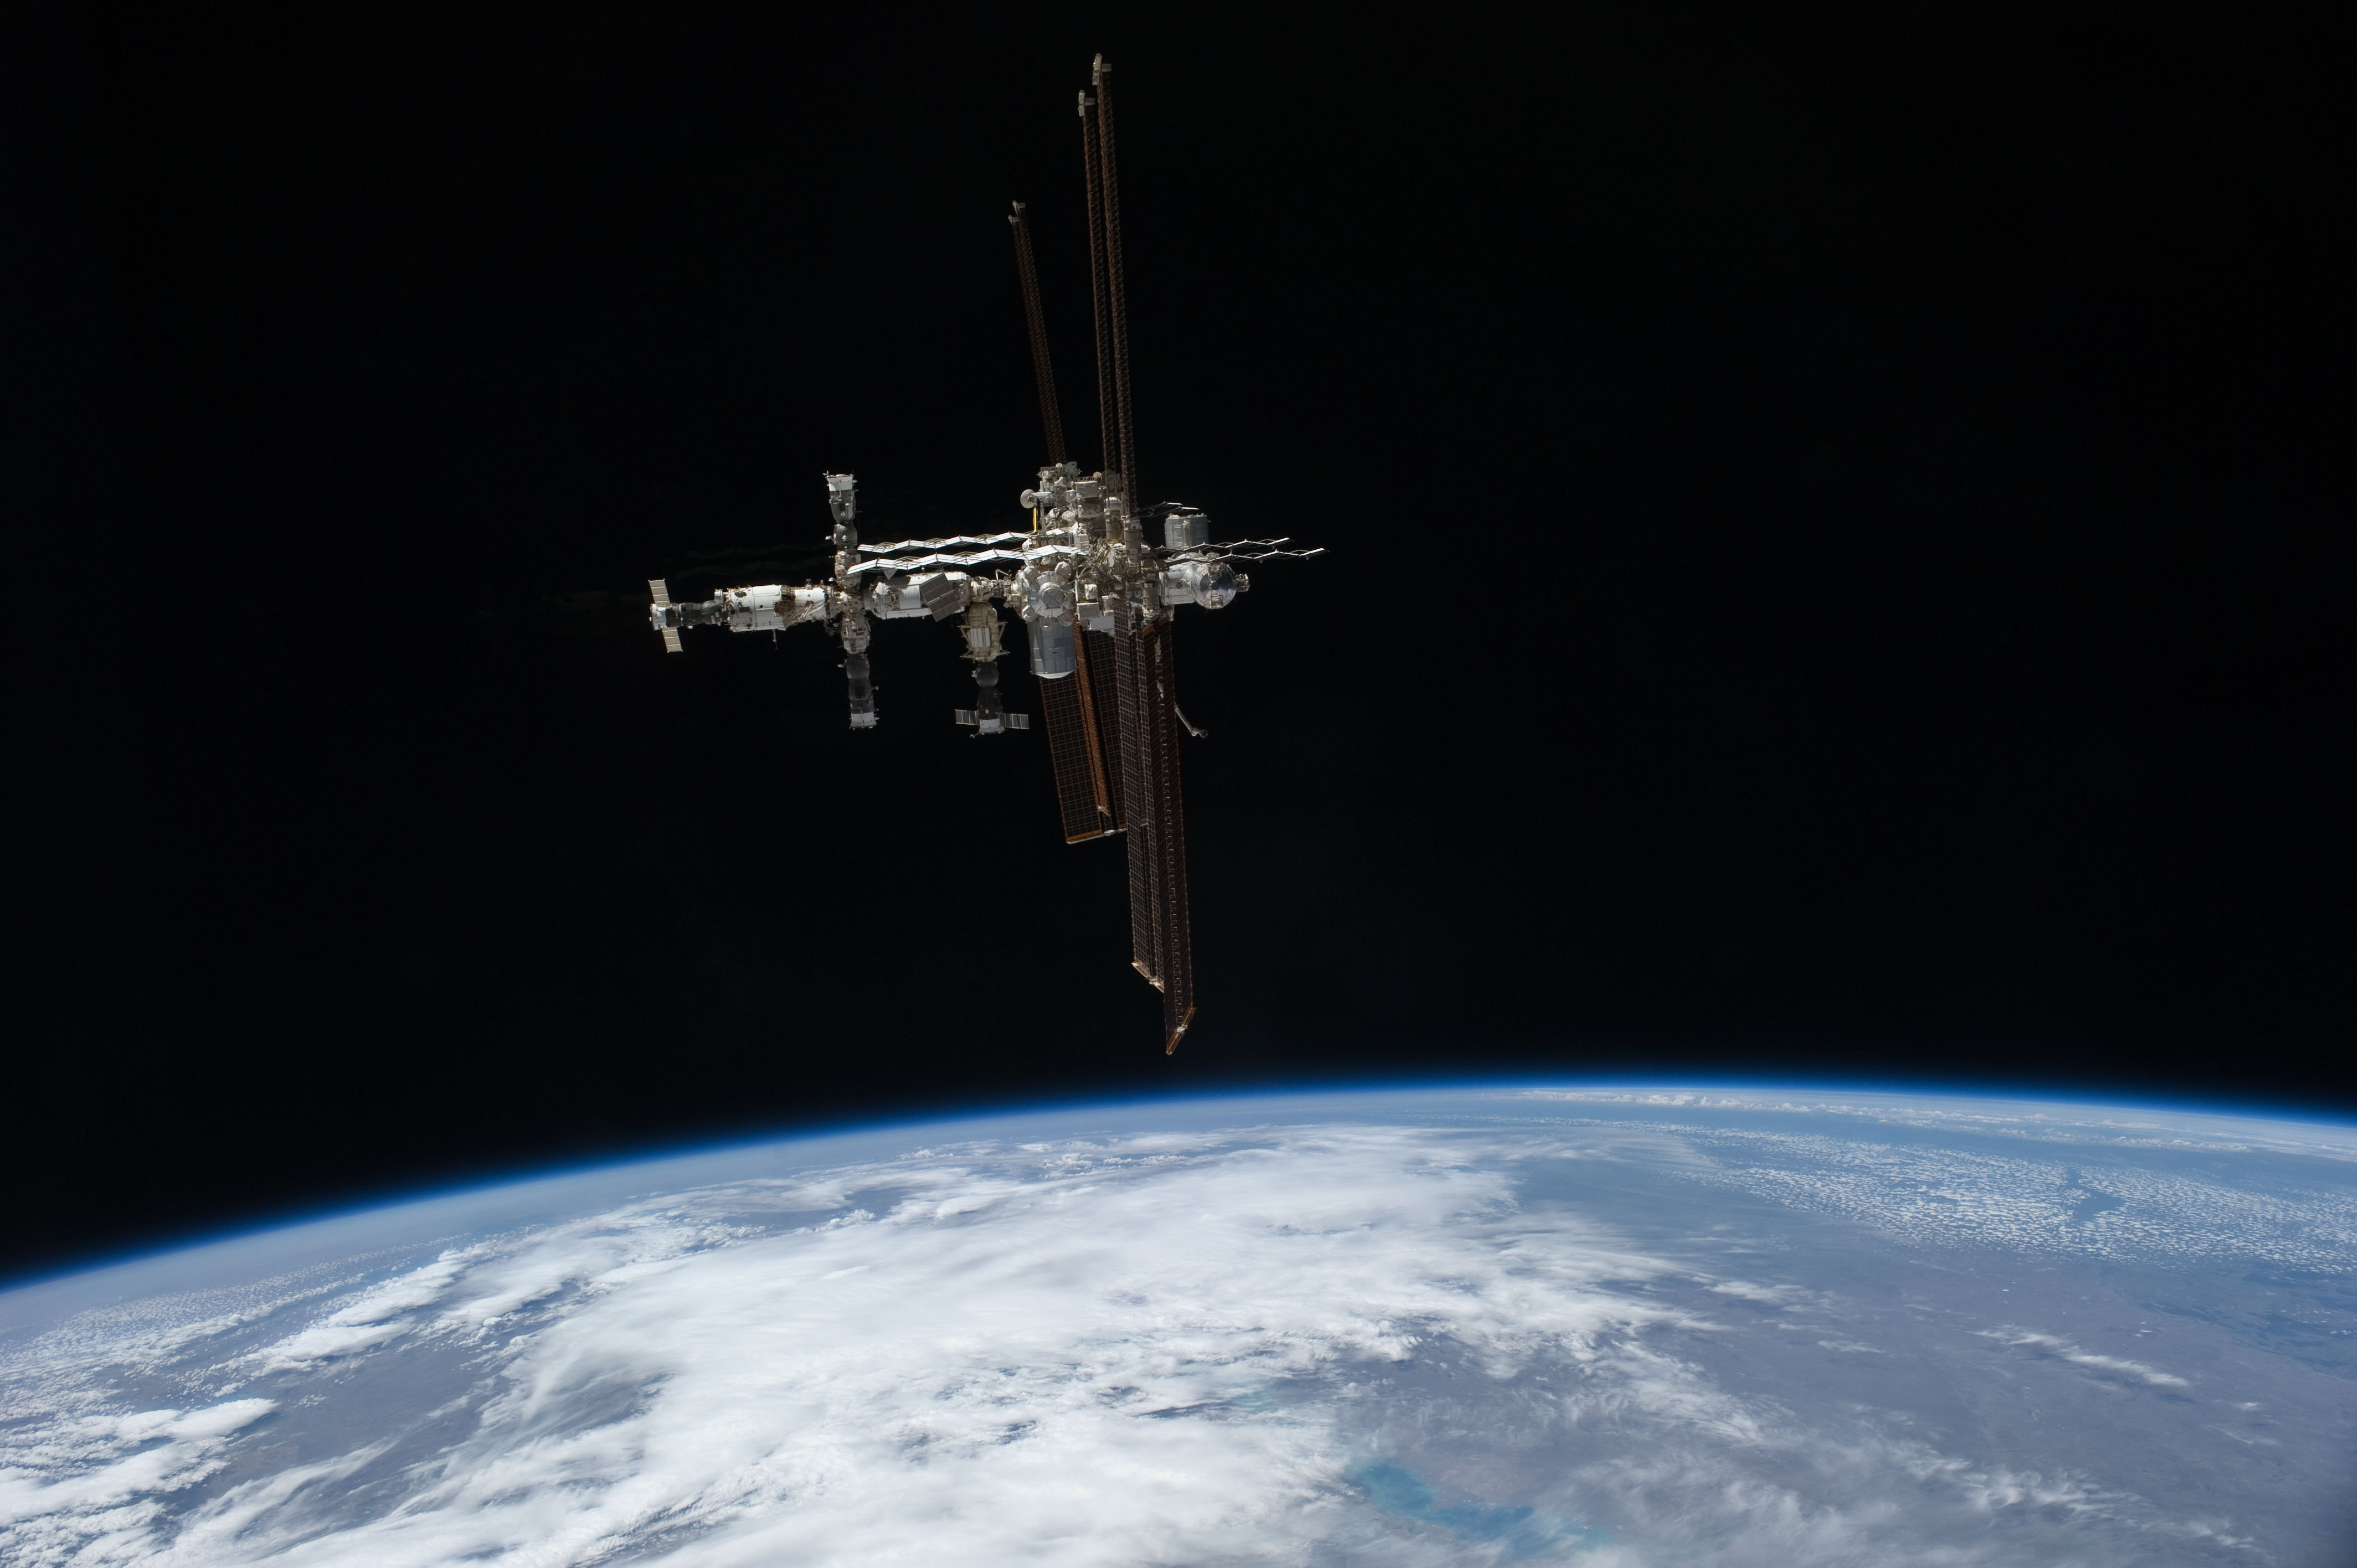 international space station weed - photo #47